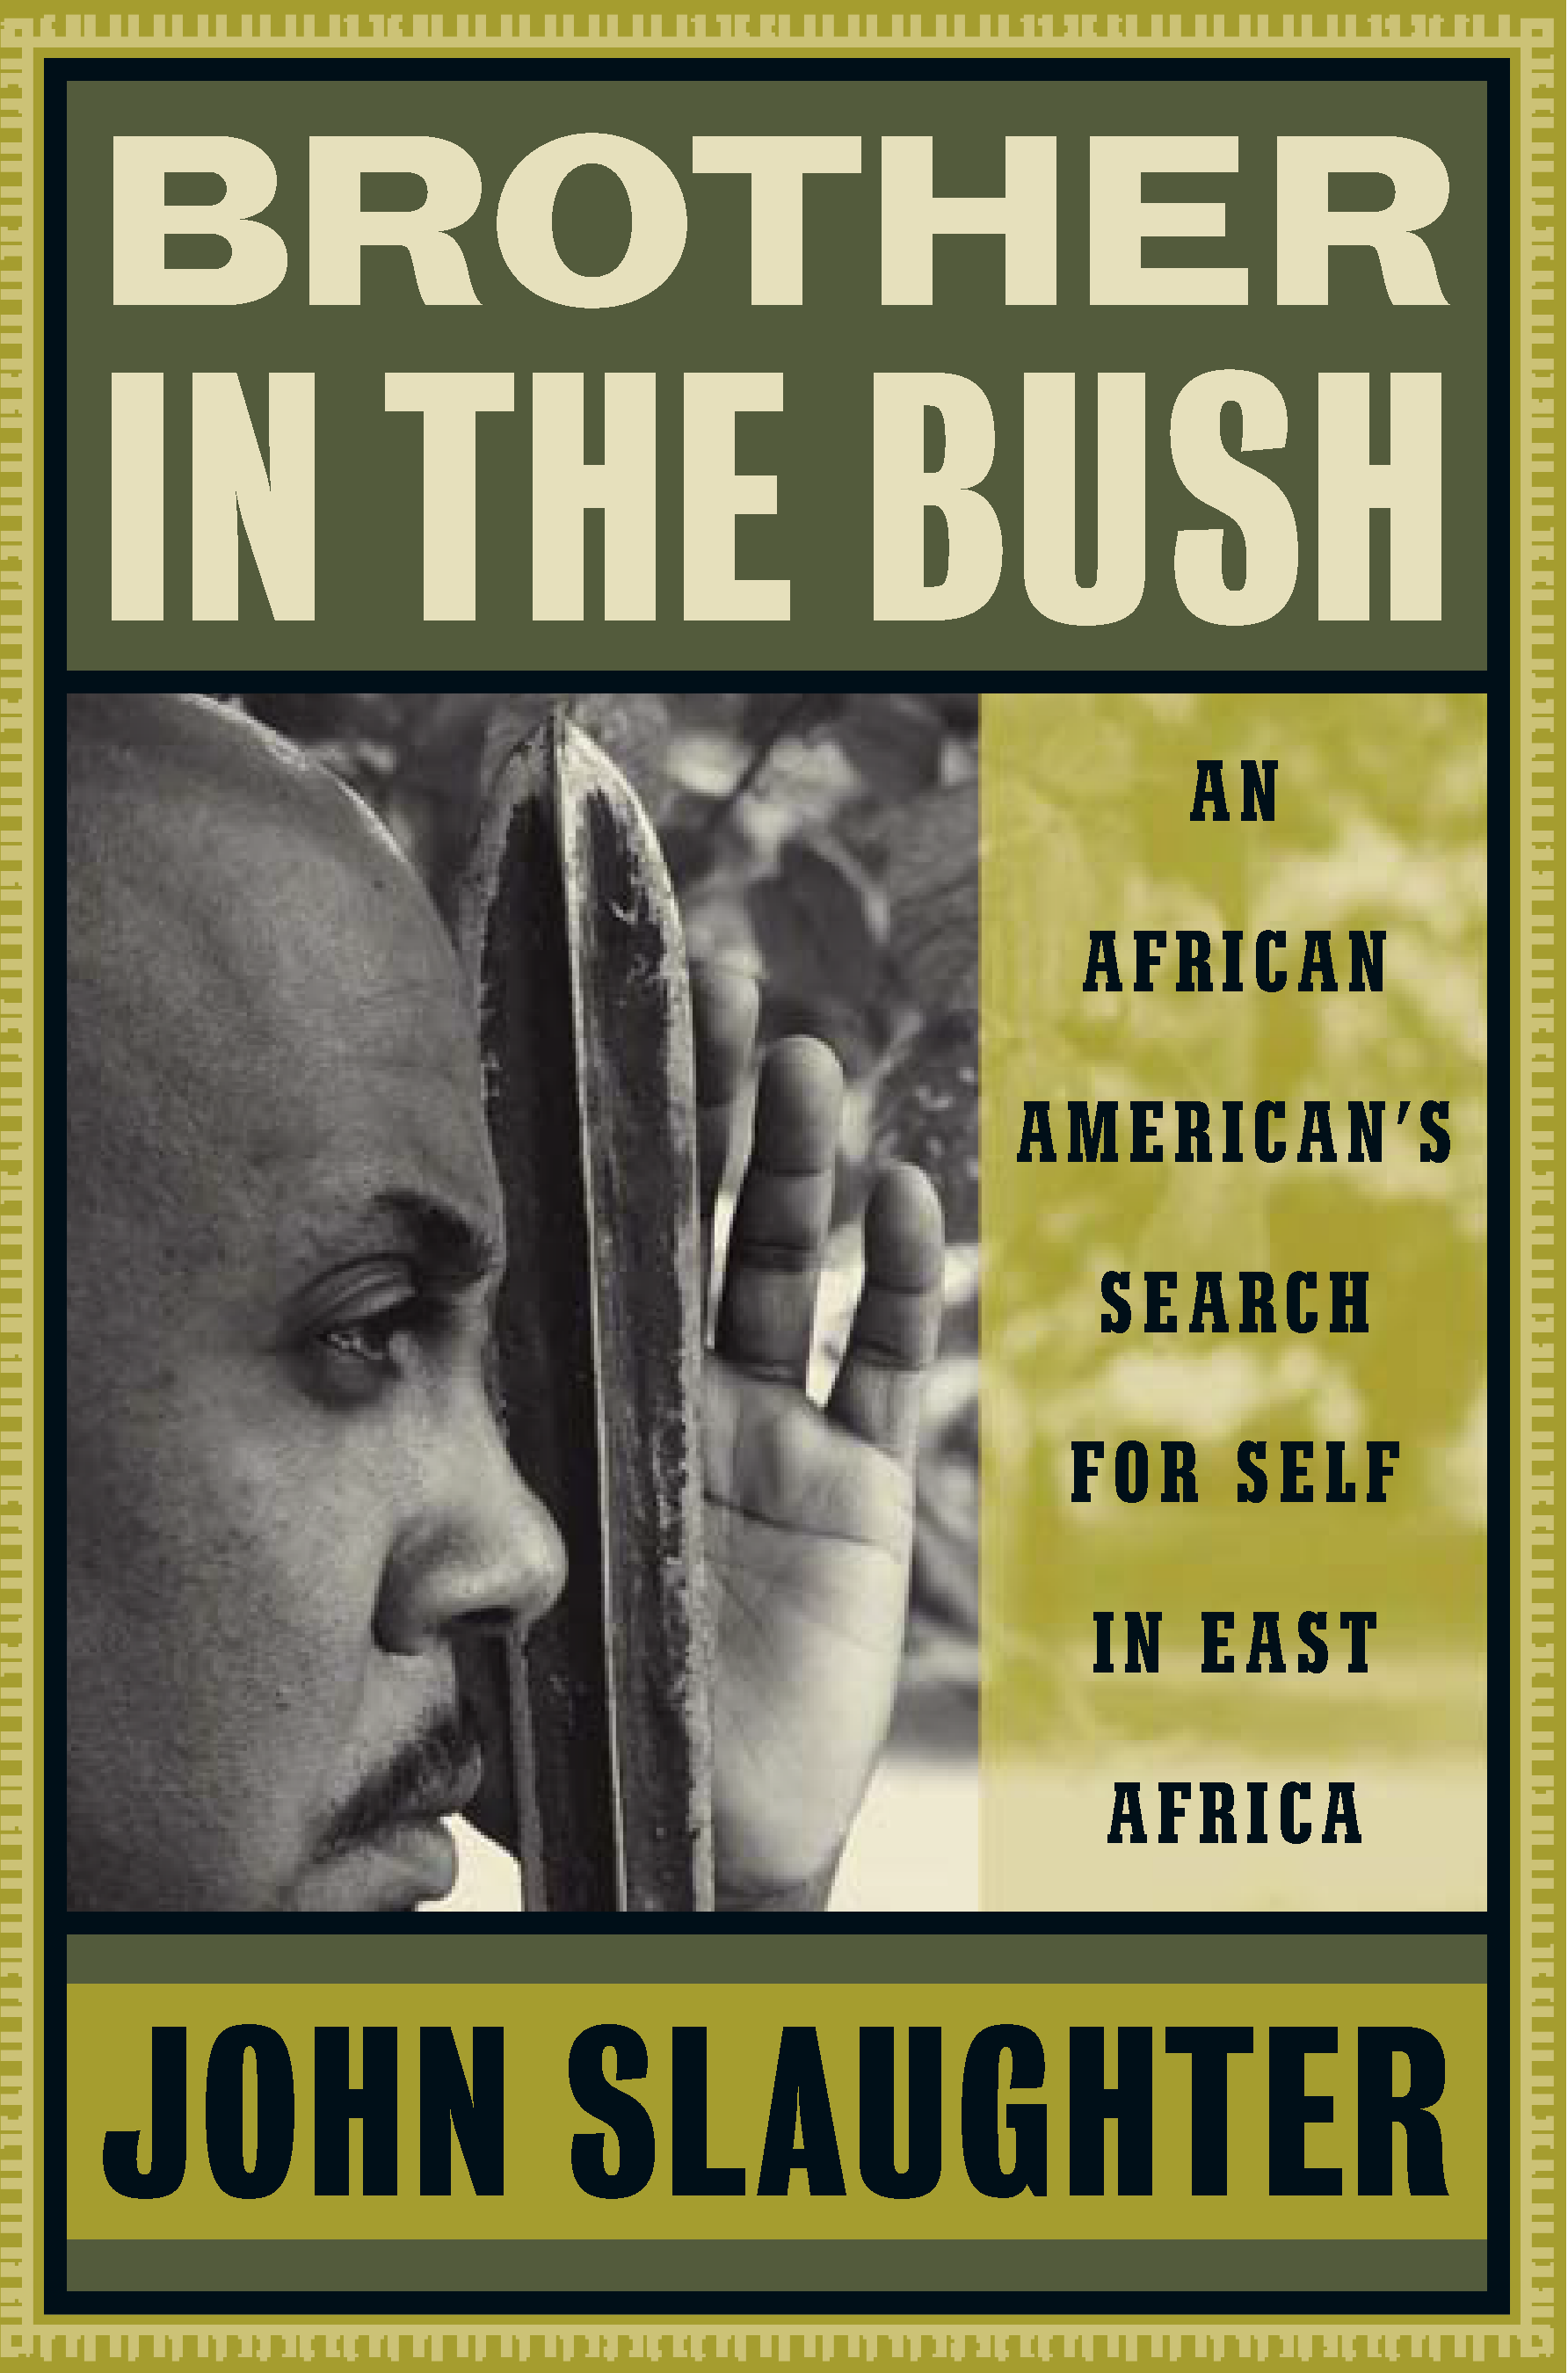 Brother in the Bush_Page_01.png